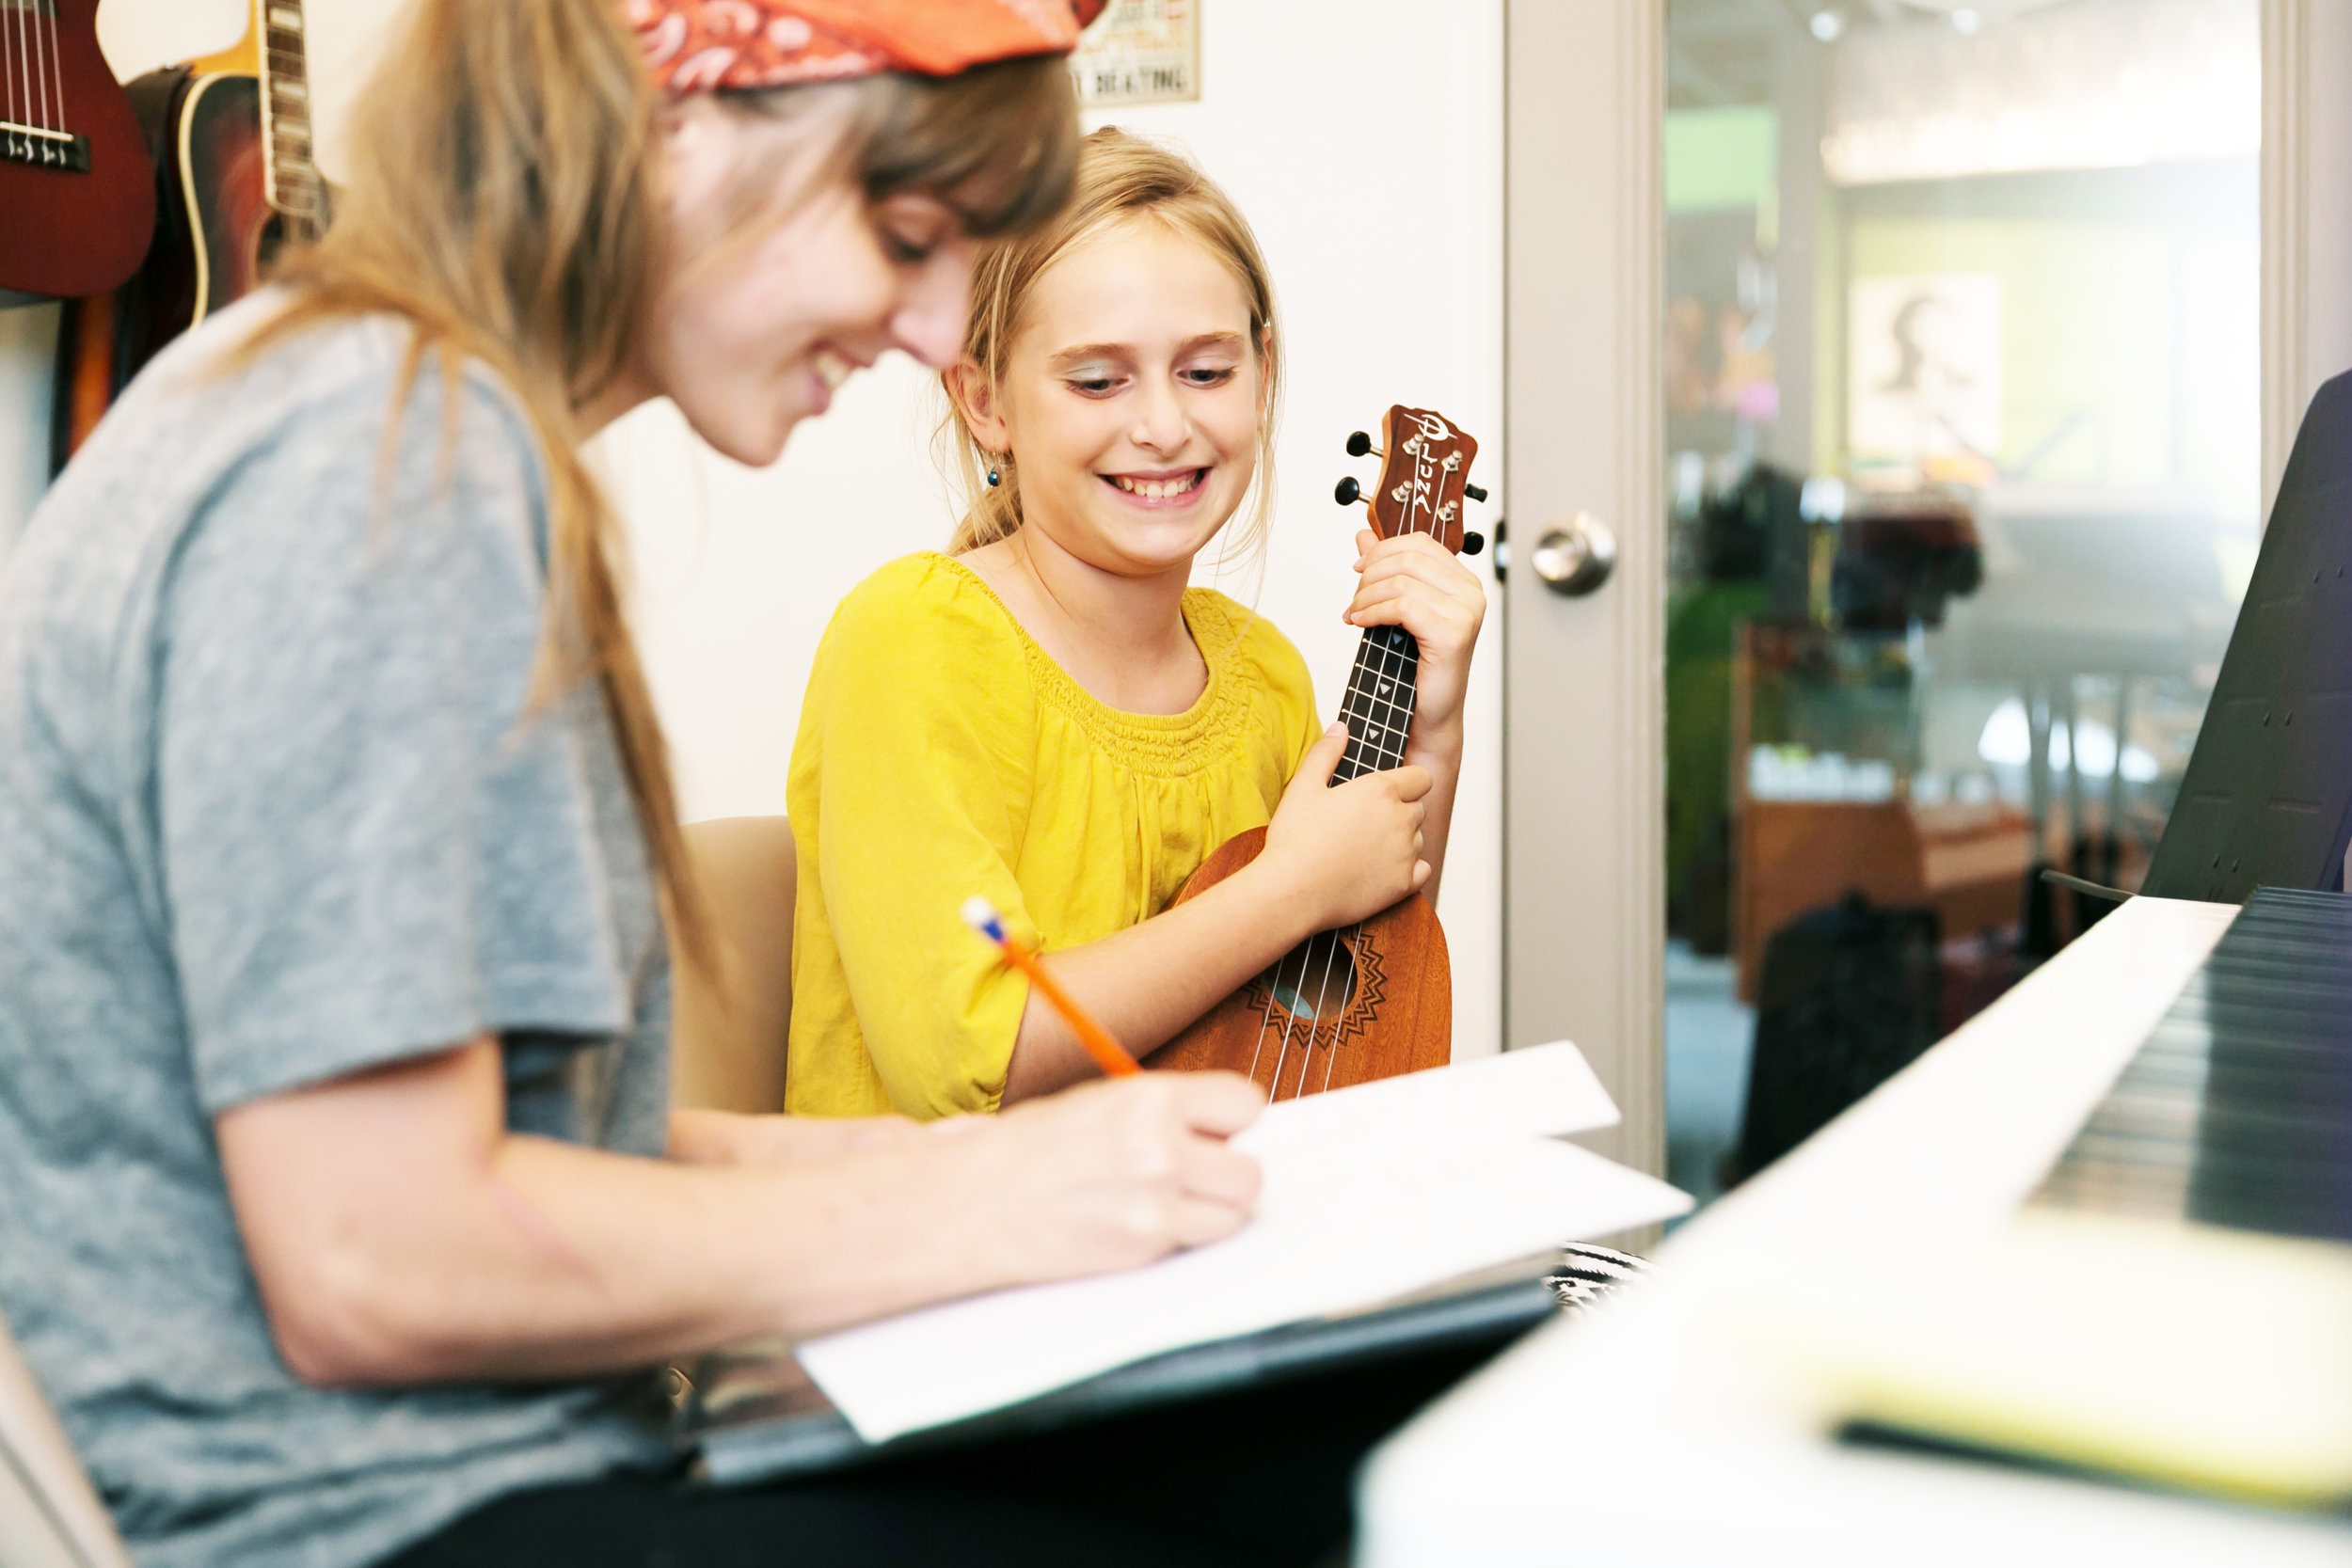 ASHLEY ELWELL/Three Three Photography Lily Lagergren, right, gets instructions from Diana Hunter, her voice and ukulele instructor at the KC Music Academy in Platte Woods.